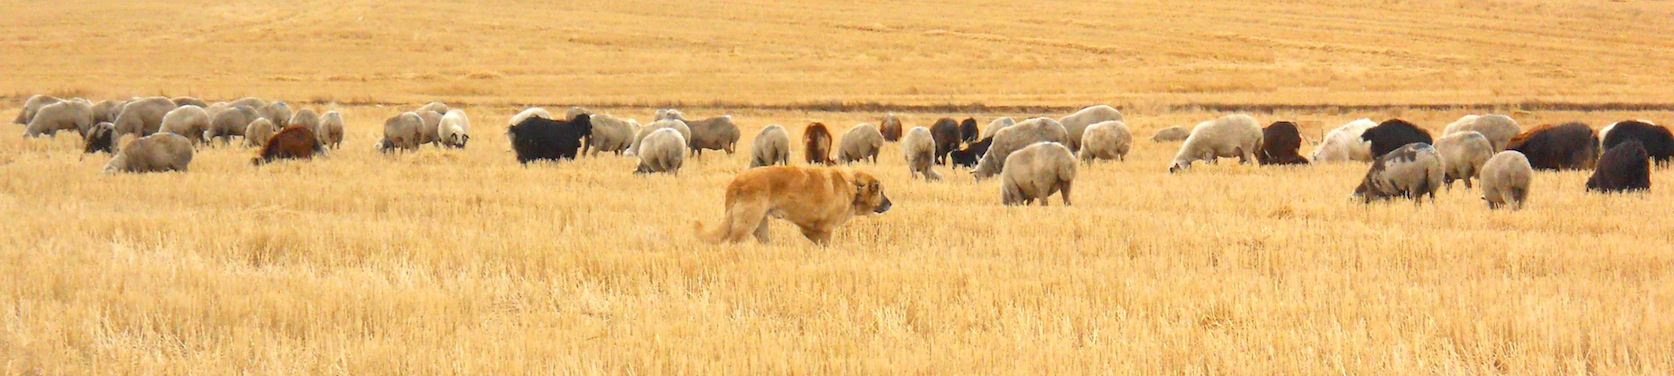 Anatolian Shepherd livestock guardian dog with sheep